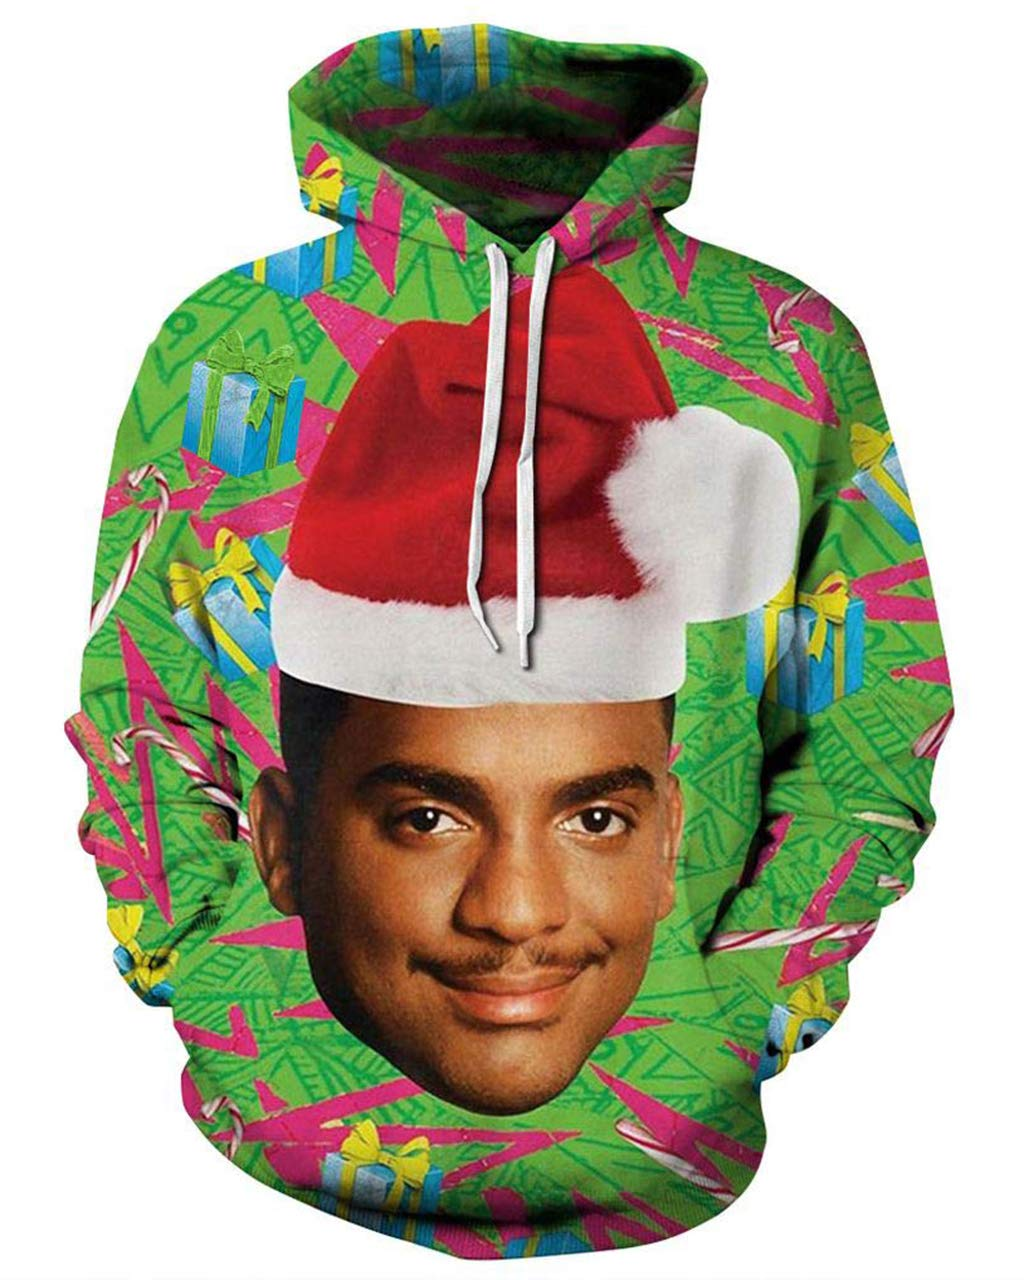 Pemela 90s Ugly Christmas Hoodies Hipster Funny Fresh Prince Sweatshirt Loose Casual Long Sleeve Pullover Sportswear for Xmas Party L  Price: $22.99